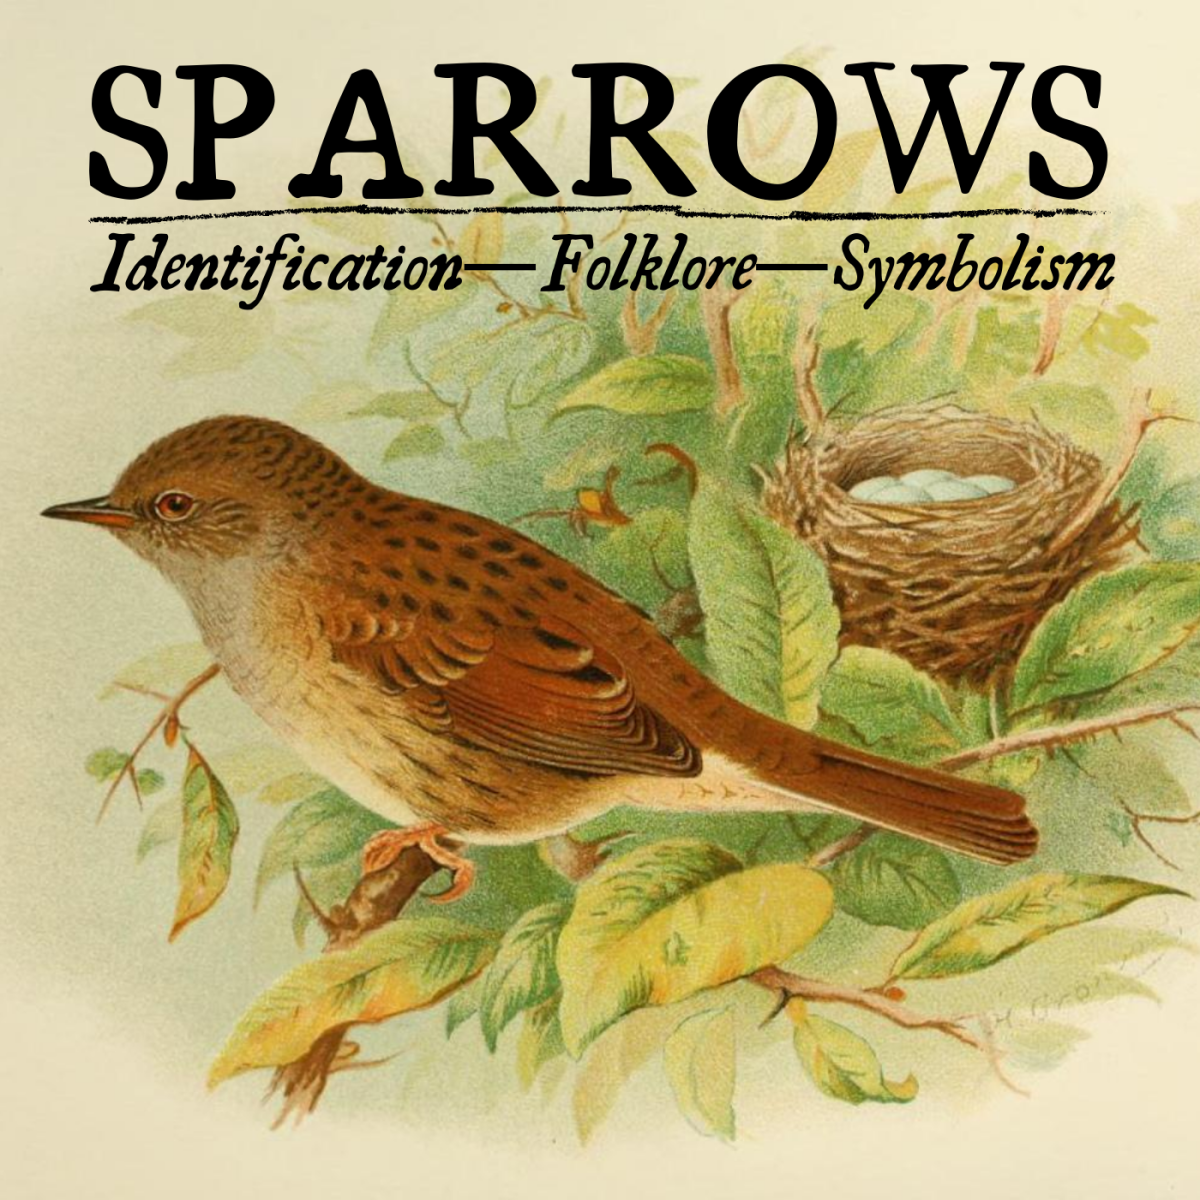 Sparrows' symbolic significance varies depending on culture and context.